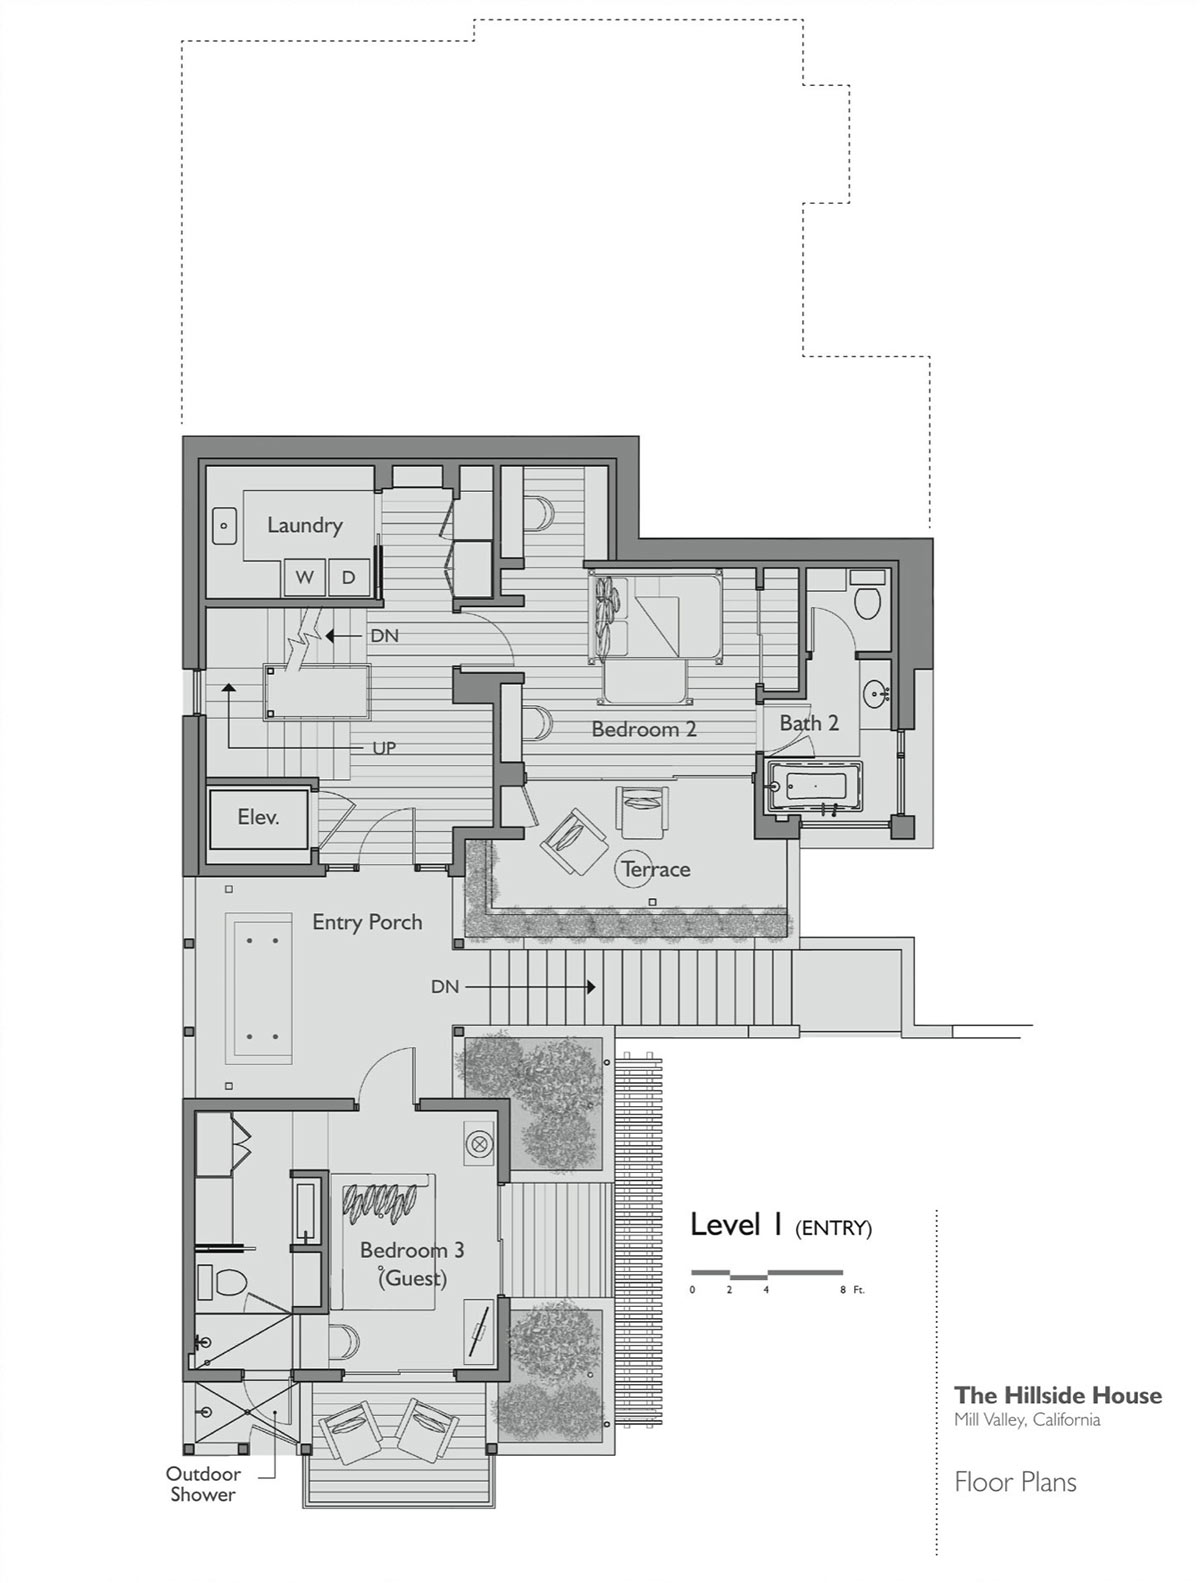 Floor Plan Level 1 Hillside House California By Sb Architects